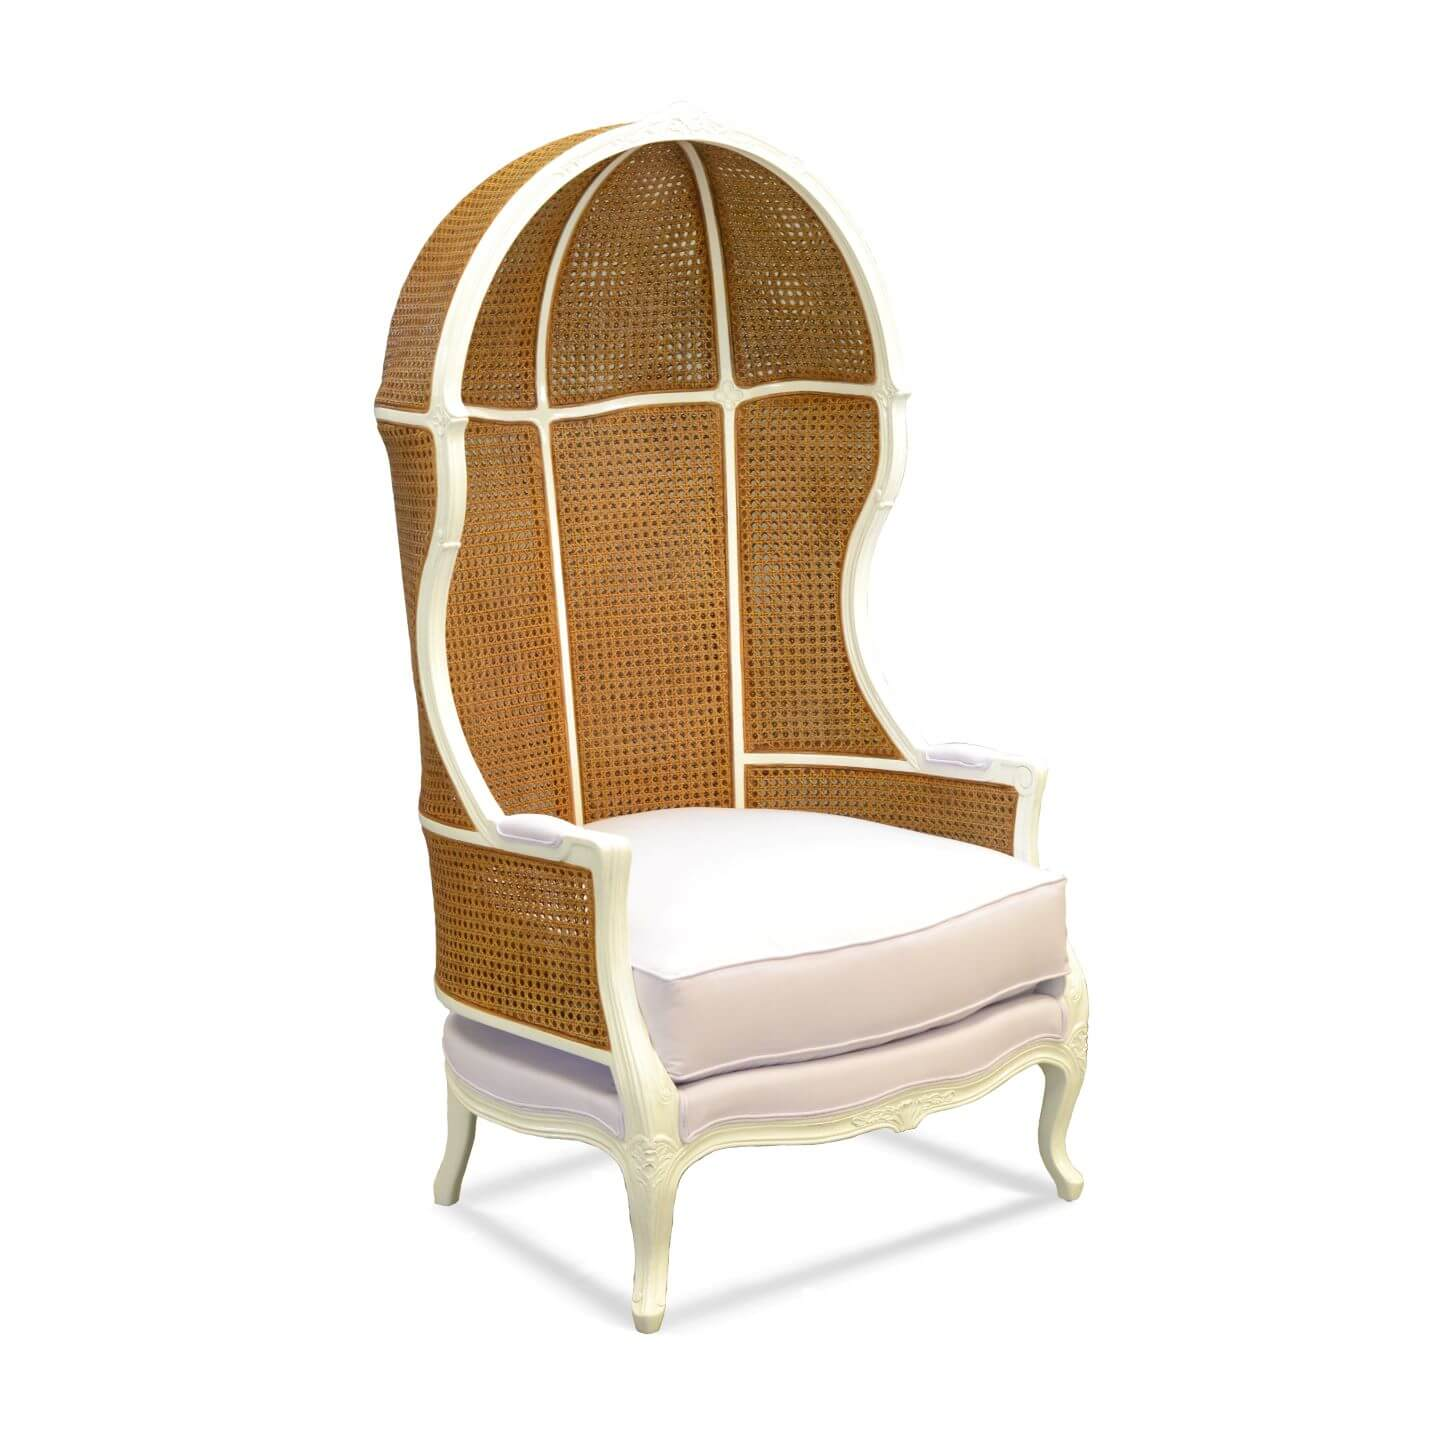 CHISWICK BUTLER'S CHAIR SIDE - STUART MEMBERY HOME COLLECTION